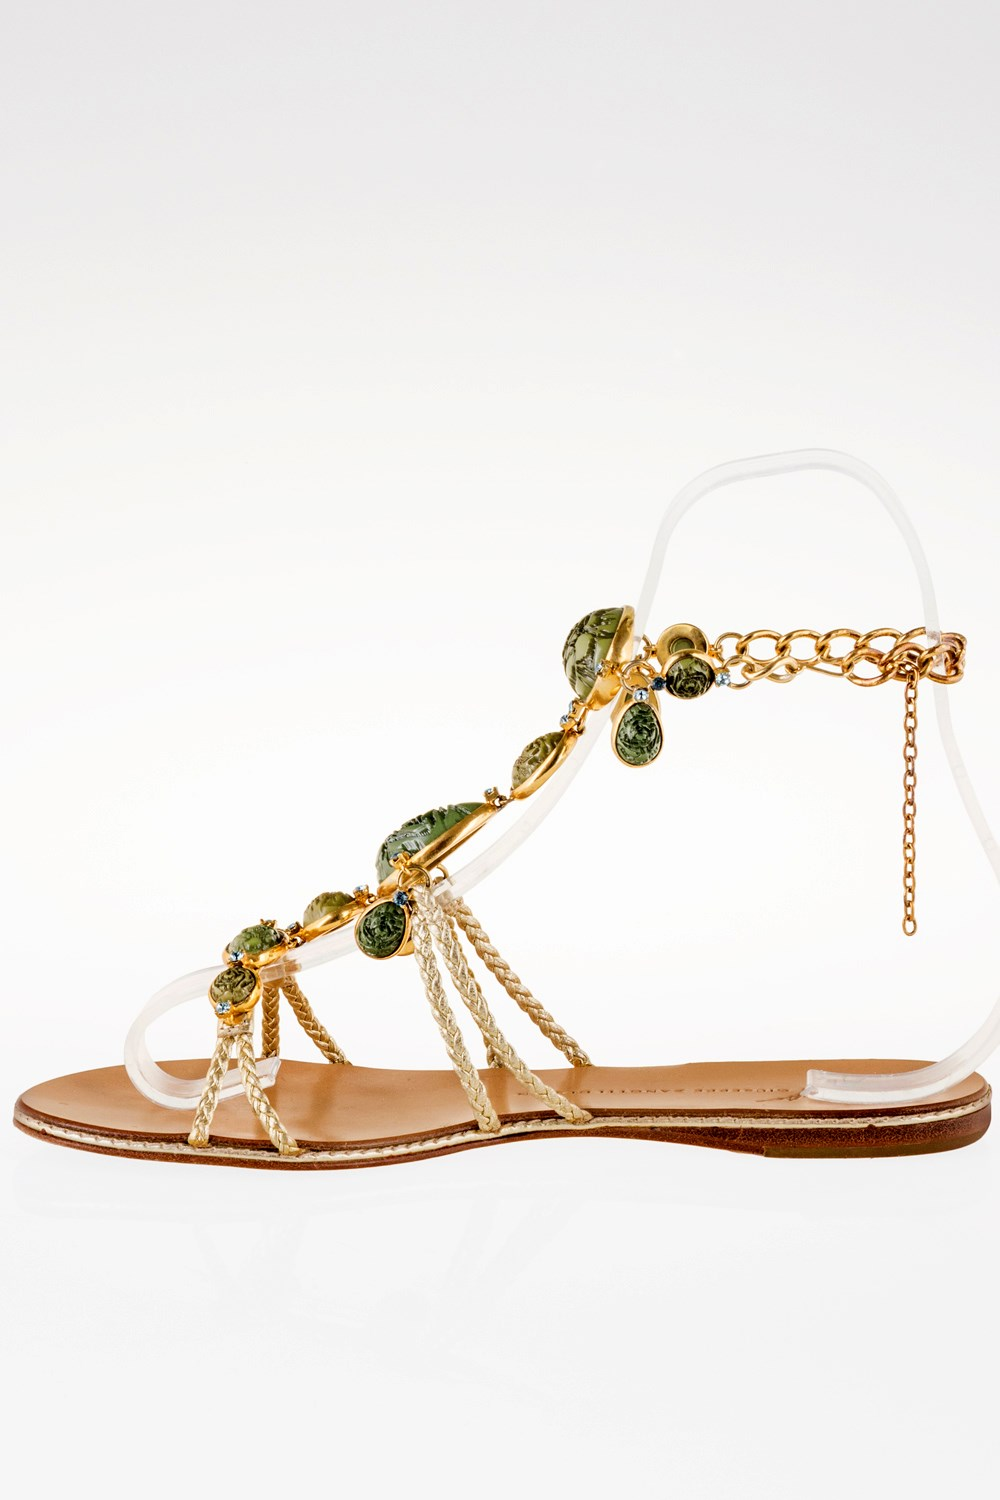 43bfa1d41602f Gold Strappy Sandals with Green Gemstones   Size  37.5 - Fit  38 ...